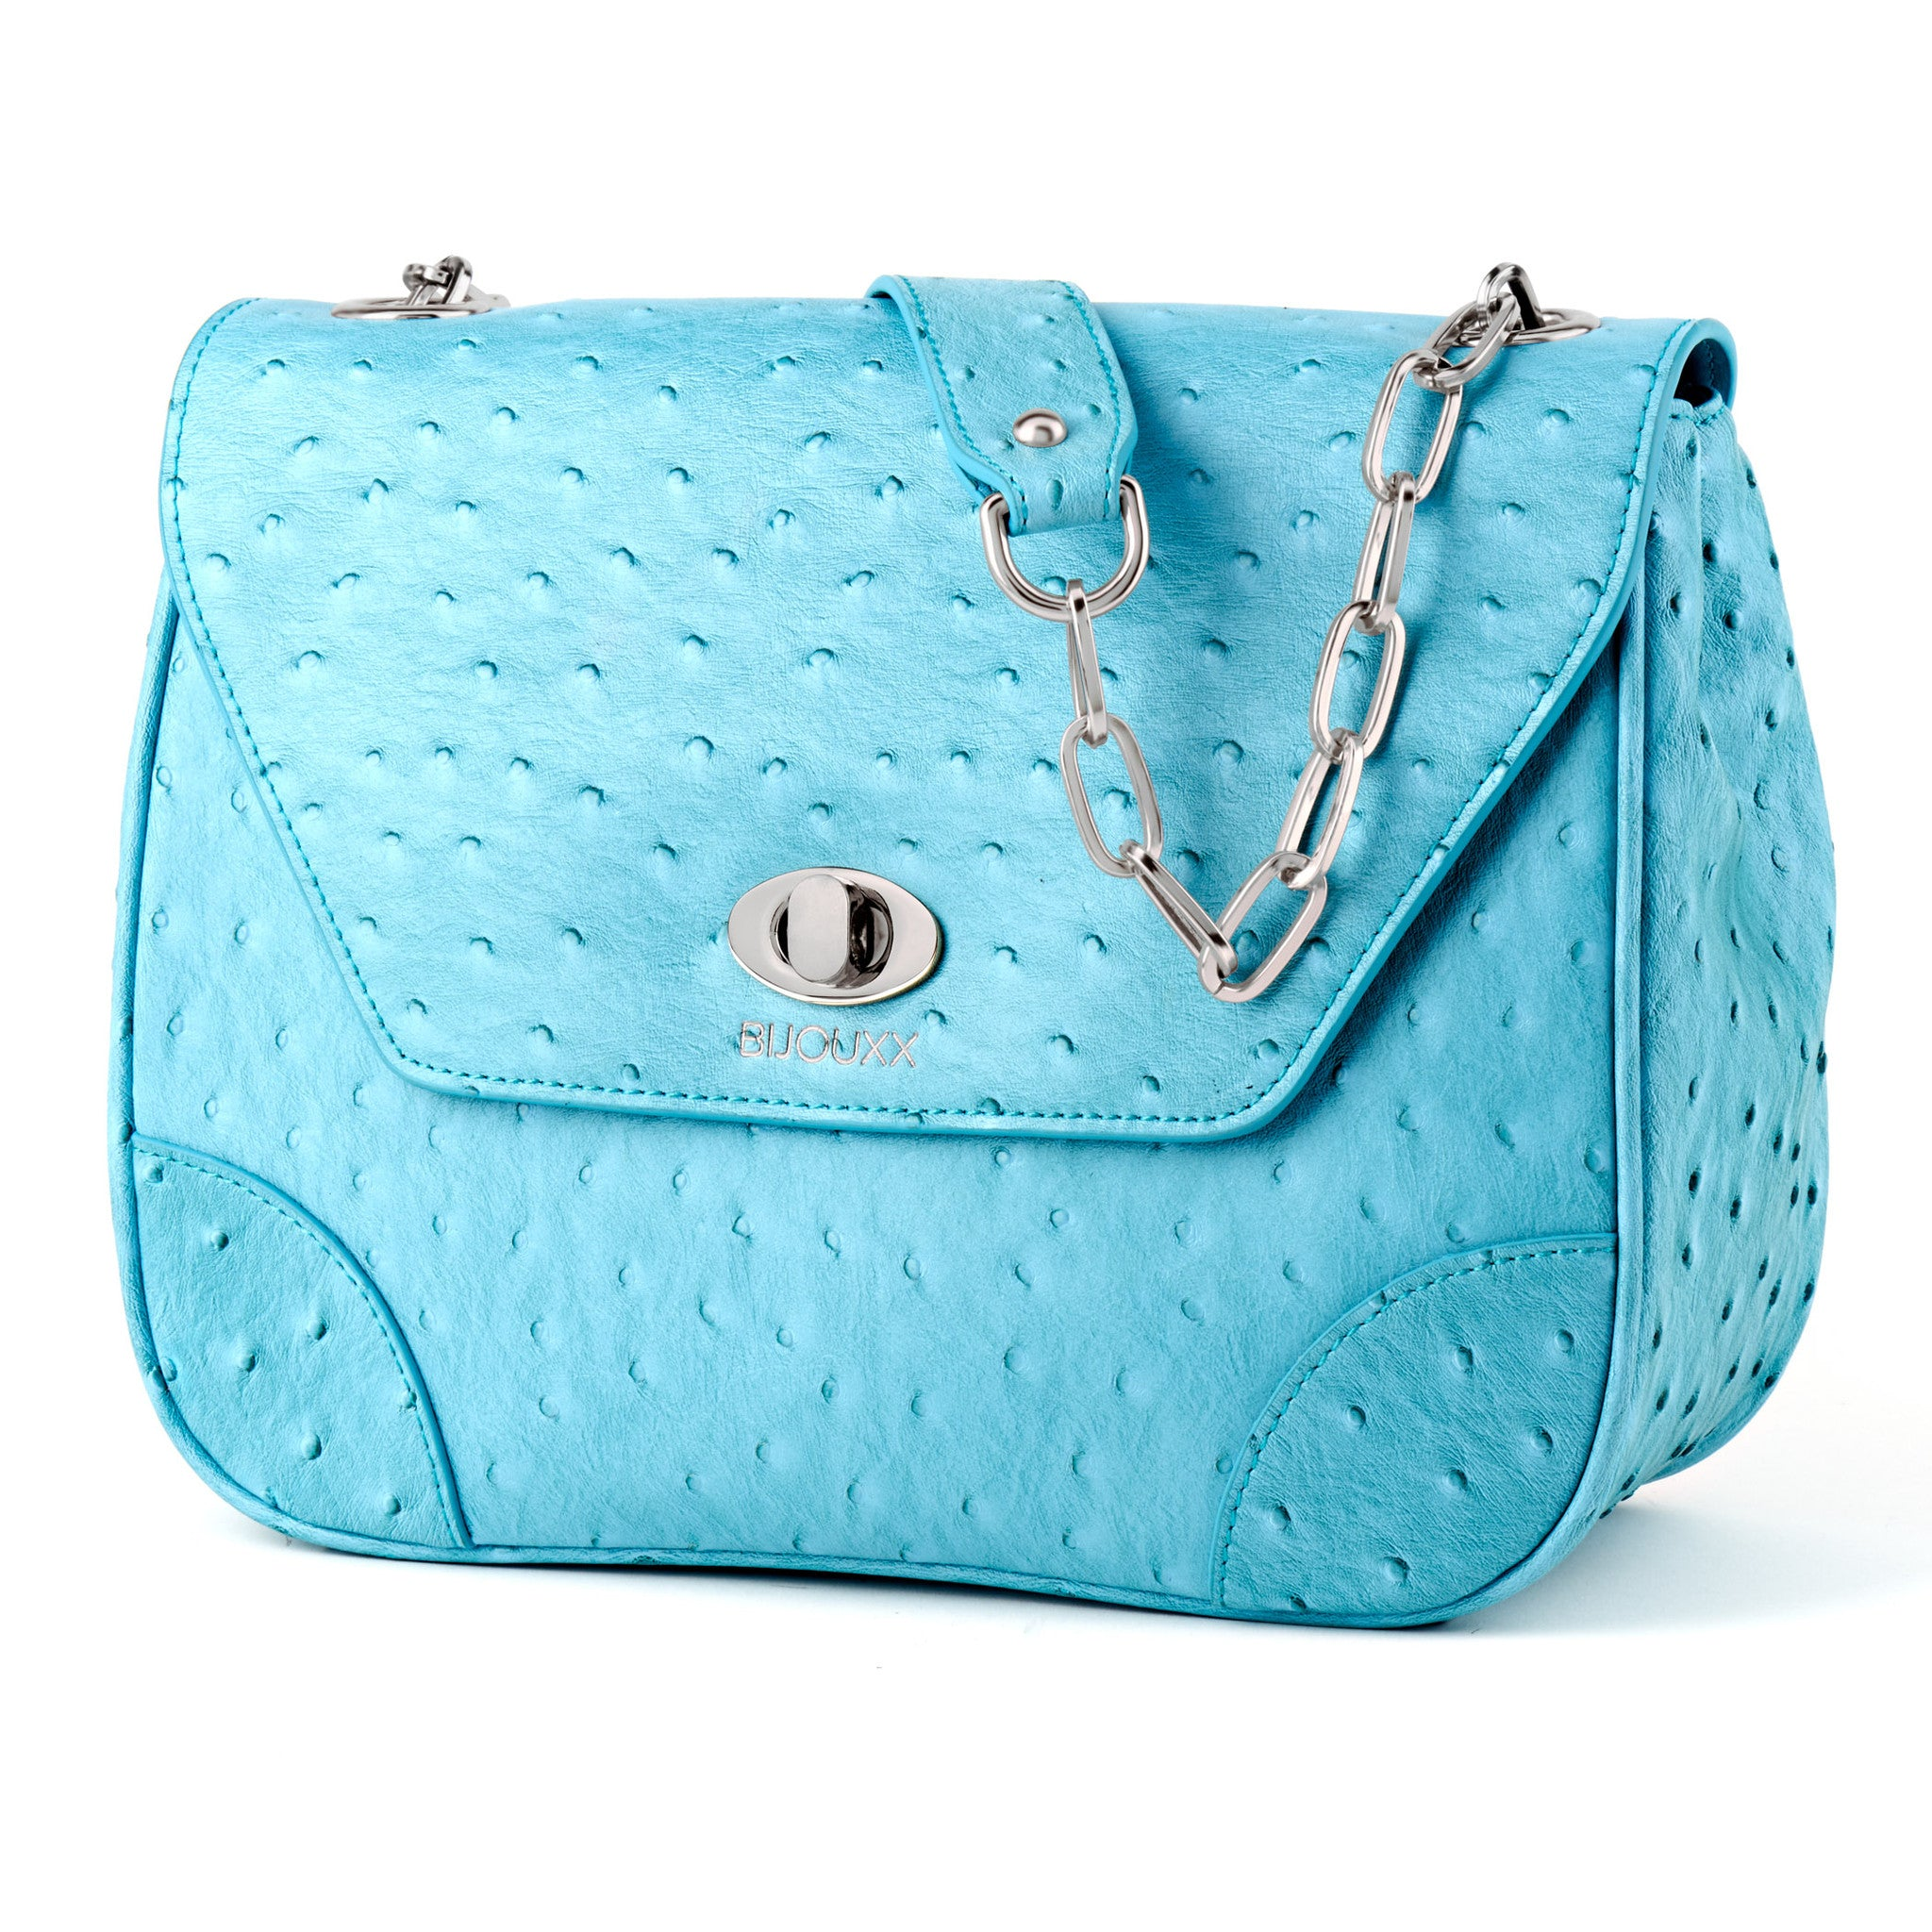 328a33457f88 Everyday Leather Bag